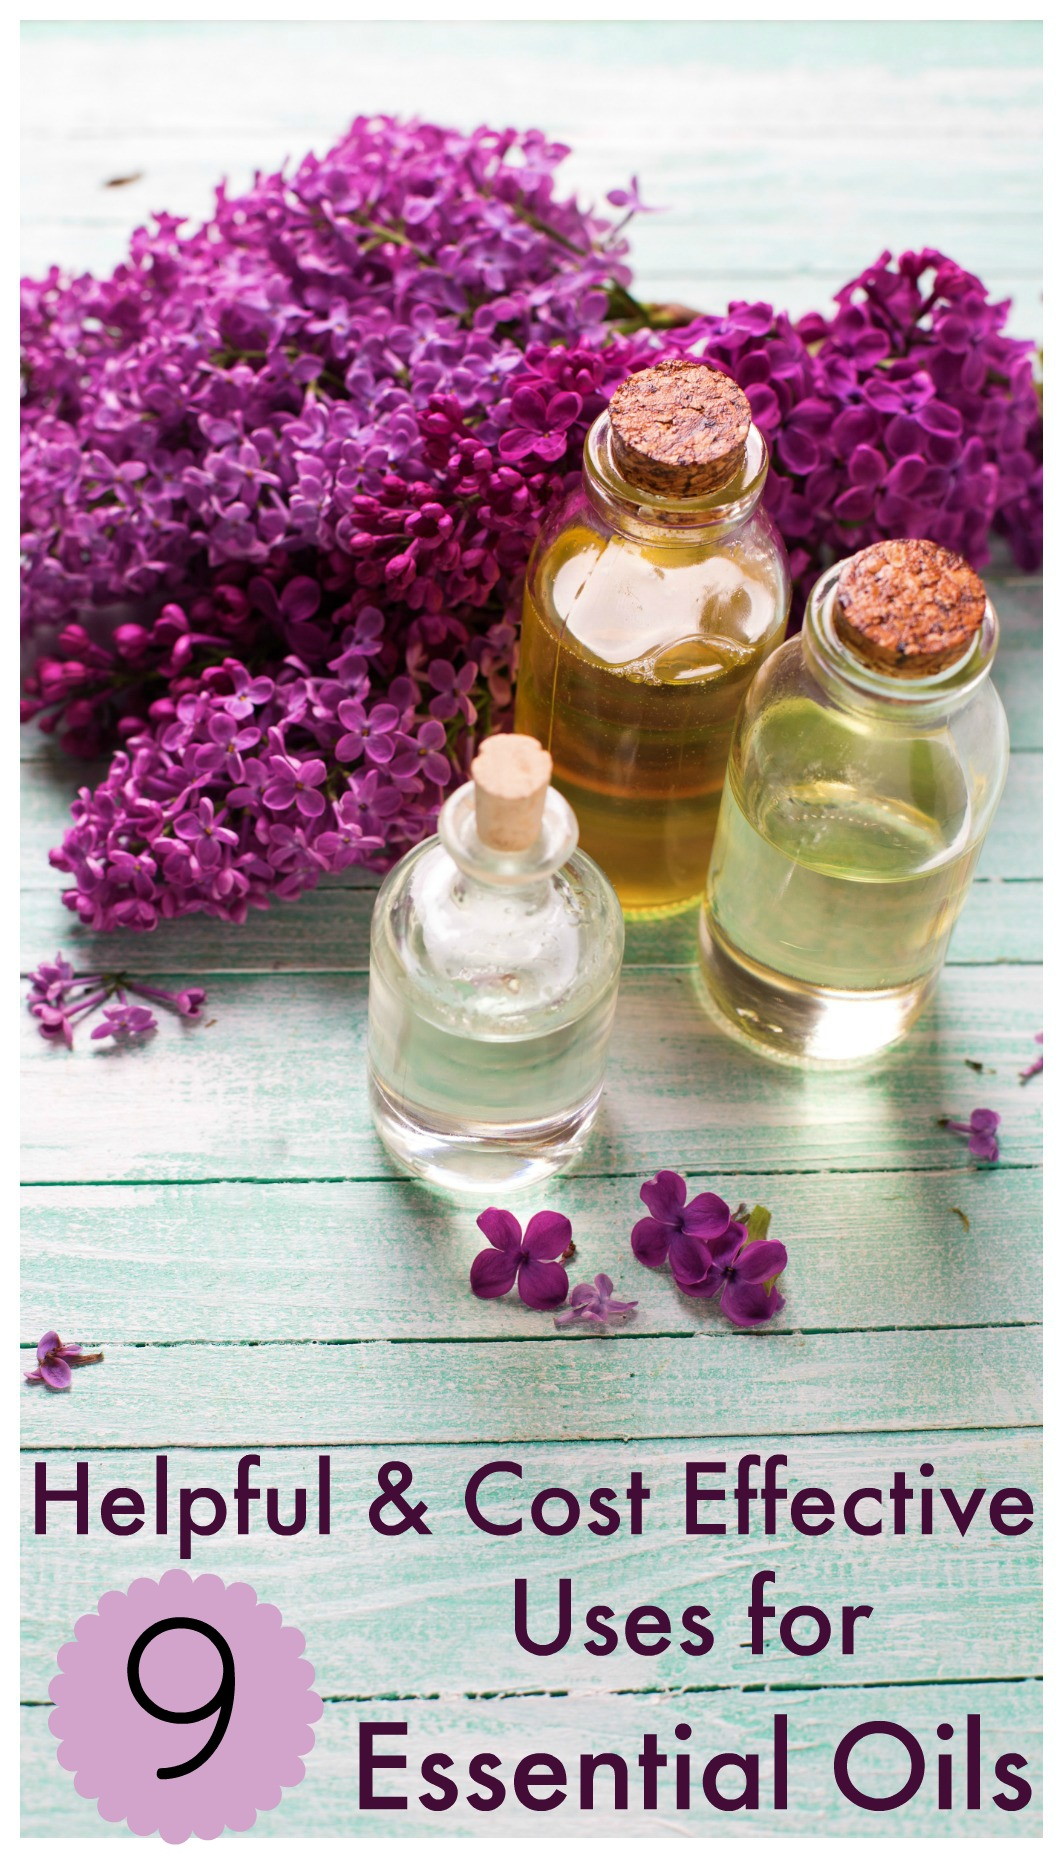 Considering using essential oils in your home but not sure how to use them? Check out these 9 awesome ways to use essential oils & how they can help your family here!